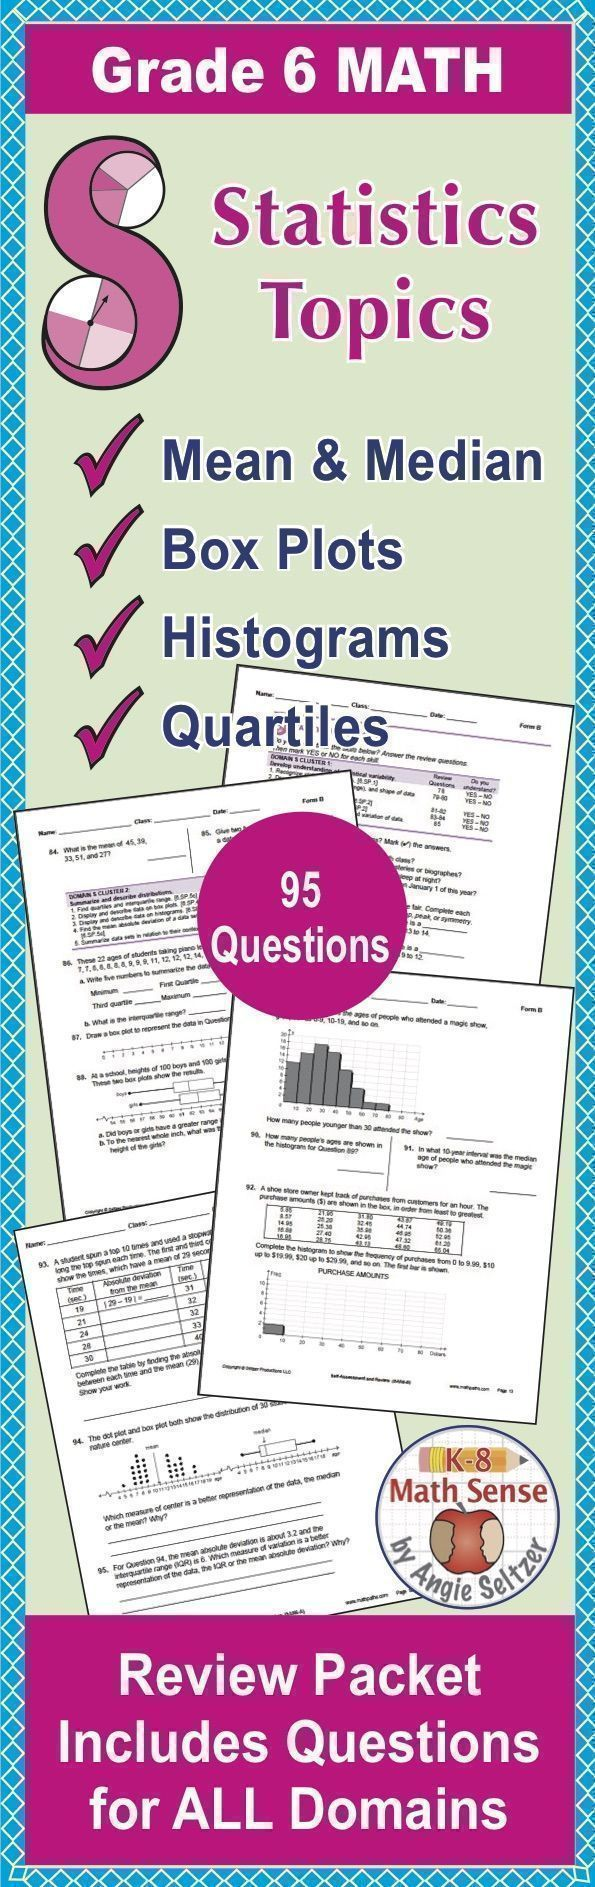 Grade 6 Ccss Math Selfassessment And Review Packet ~ Form D